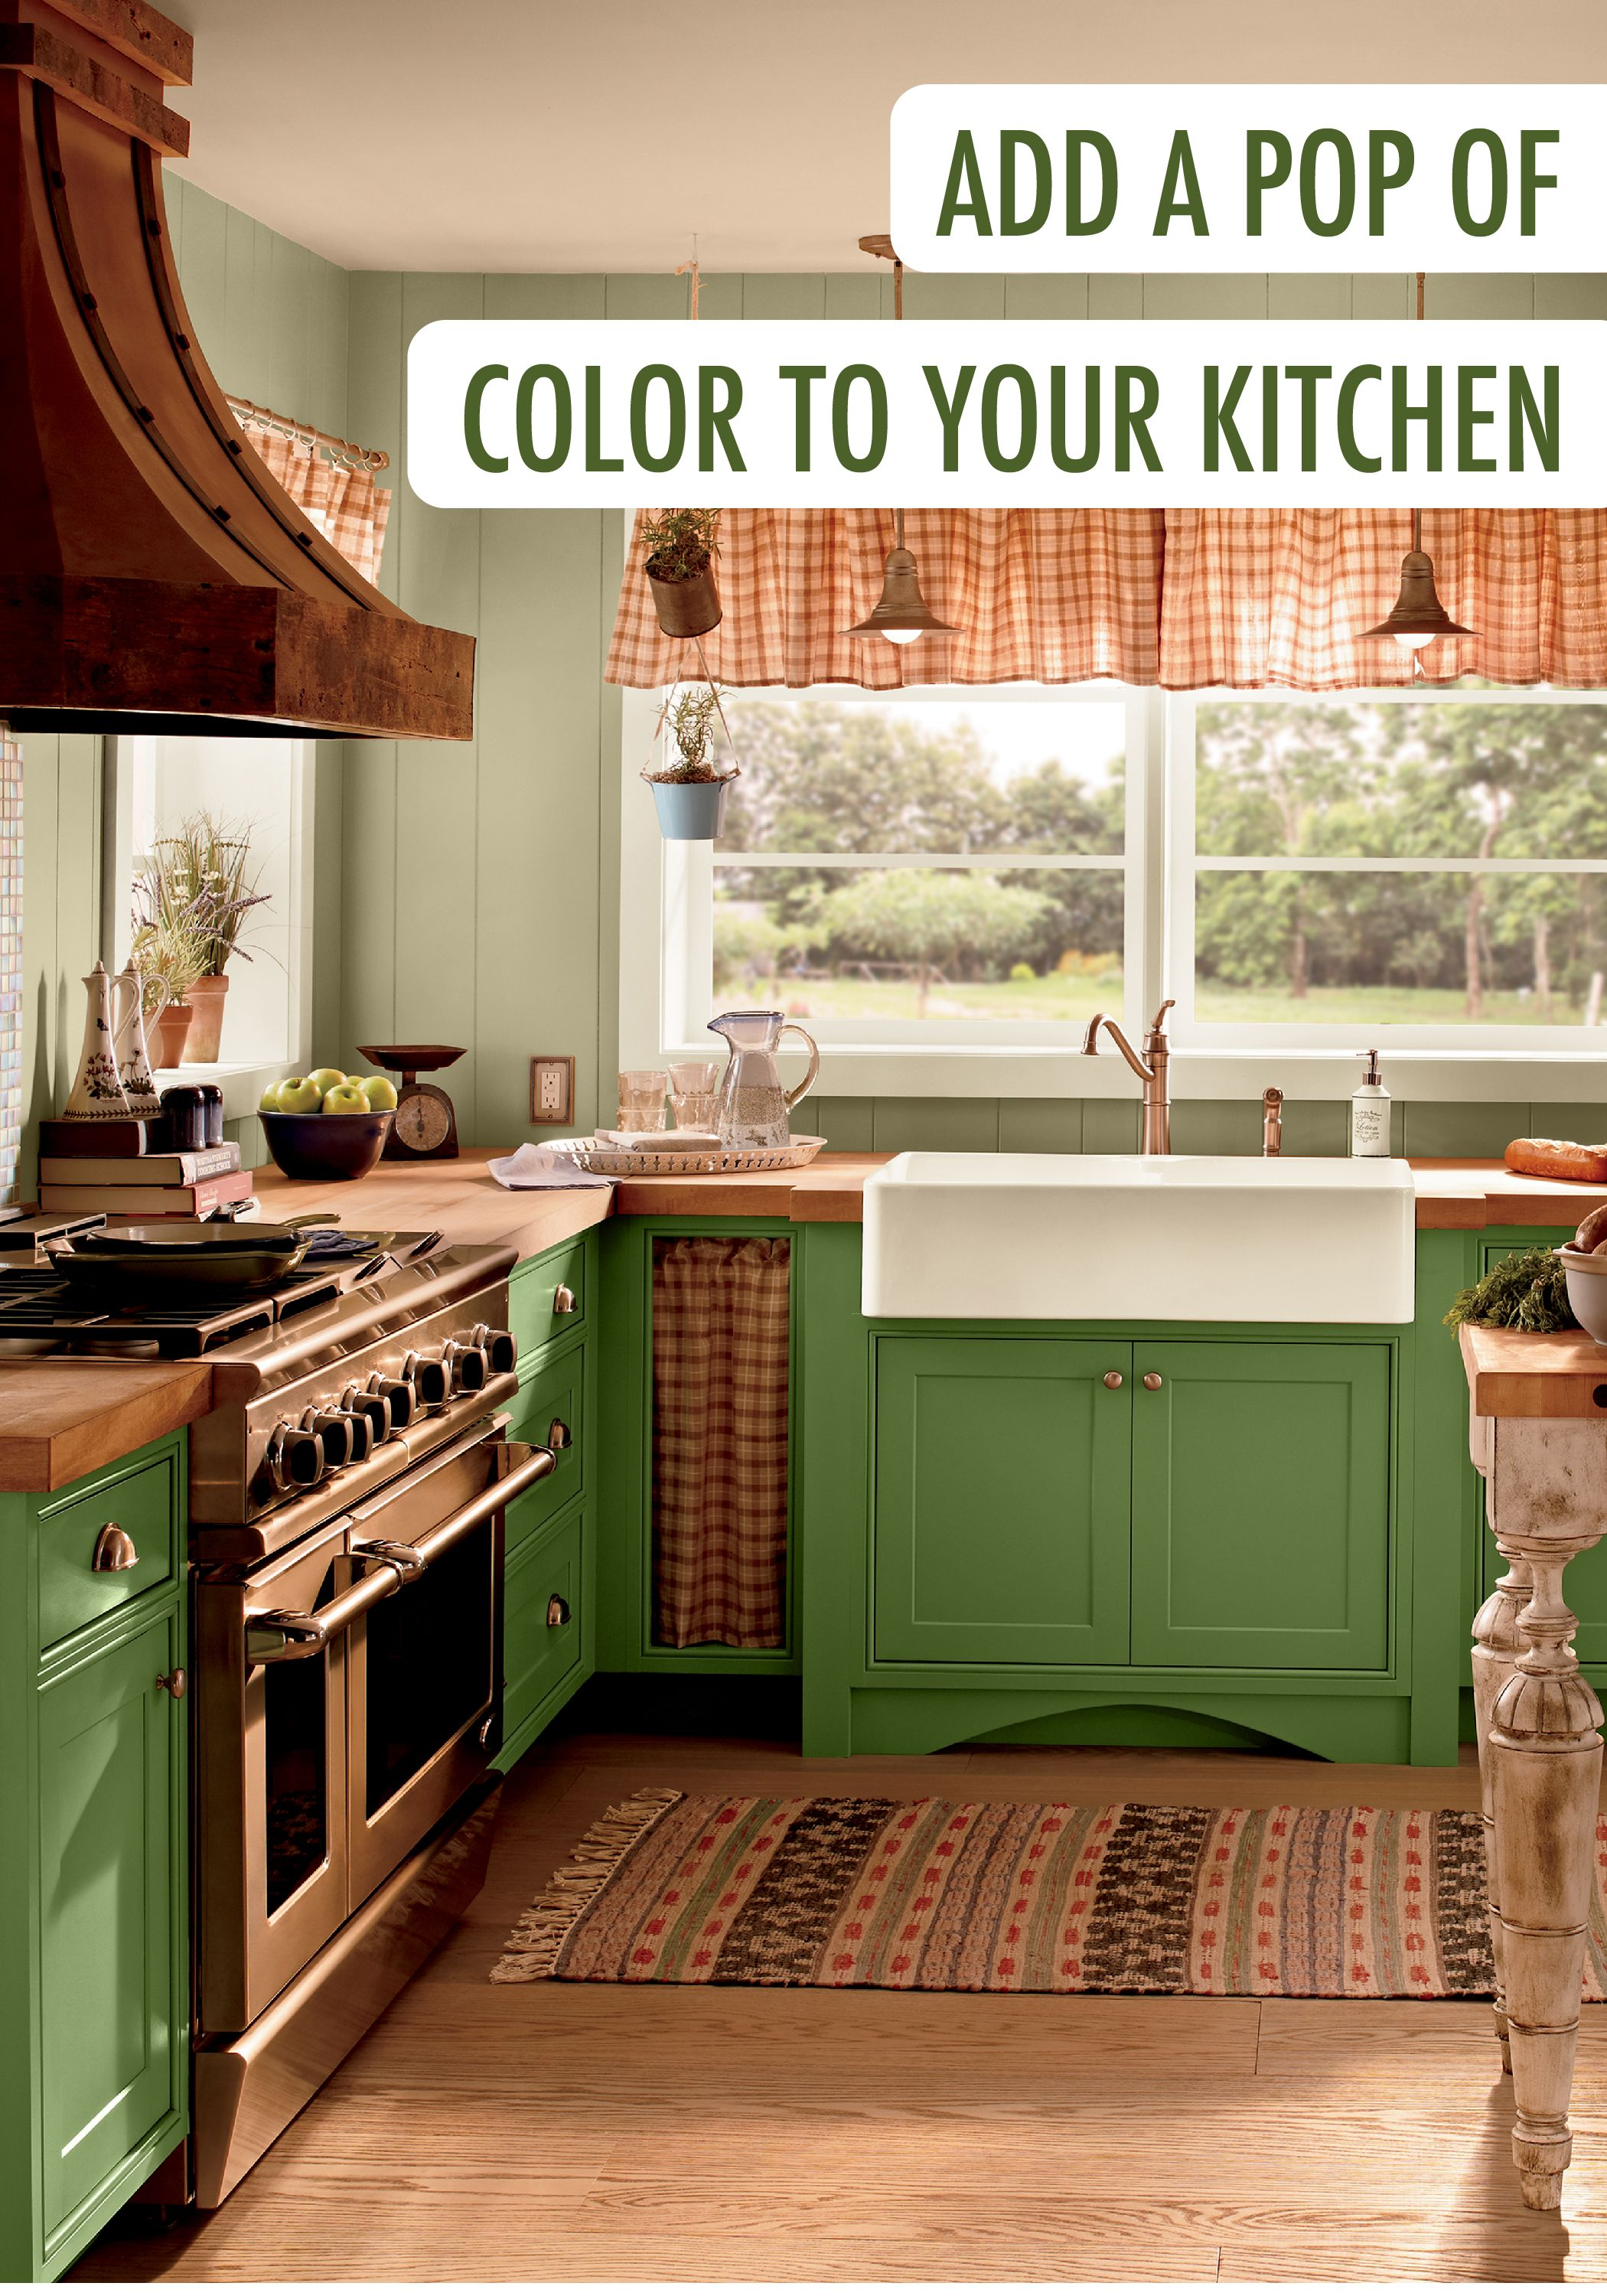 Add A Pop Of Color To Your Kitchen In An Unexpected Wayu2014with BEHR Paint In  Park Picnic On The Cabinets! To Finish Off This Unique Home Improvement  Project, ...